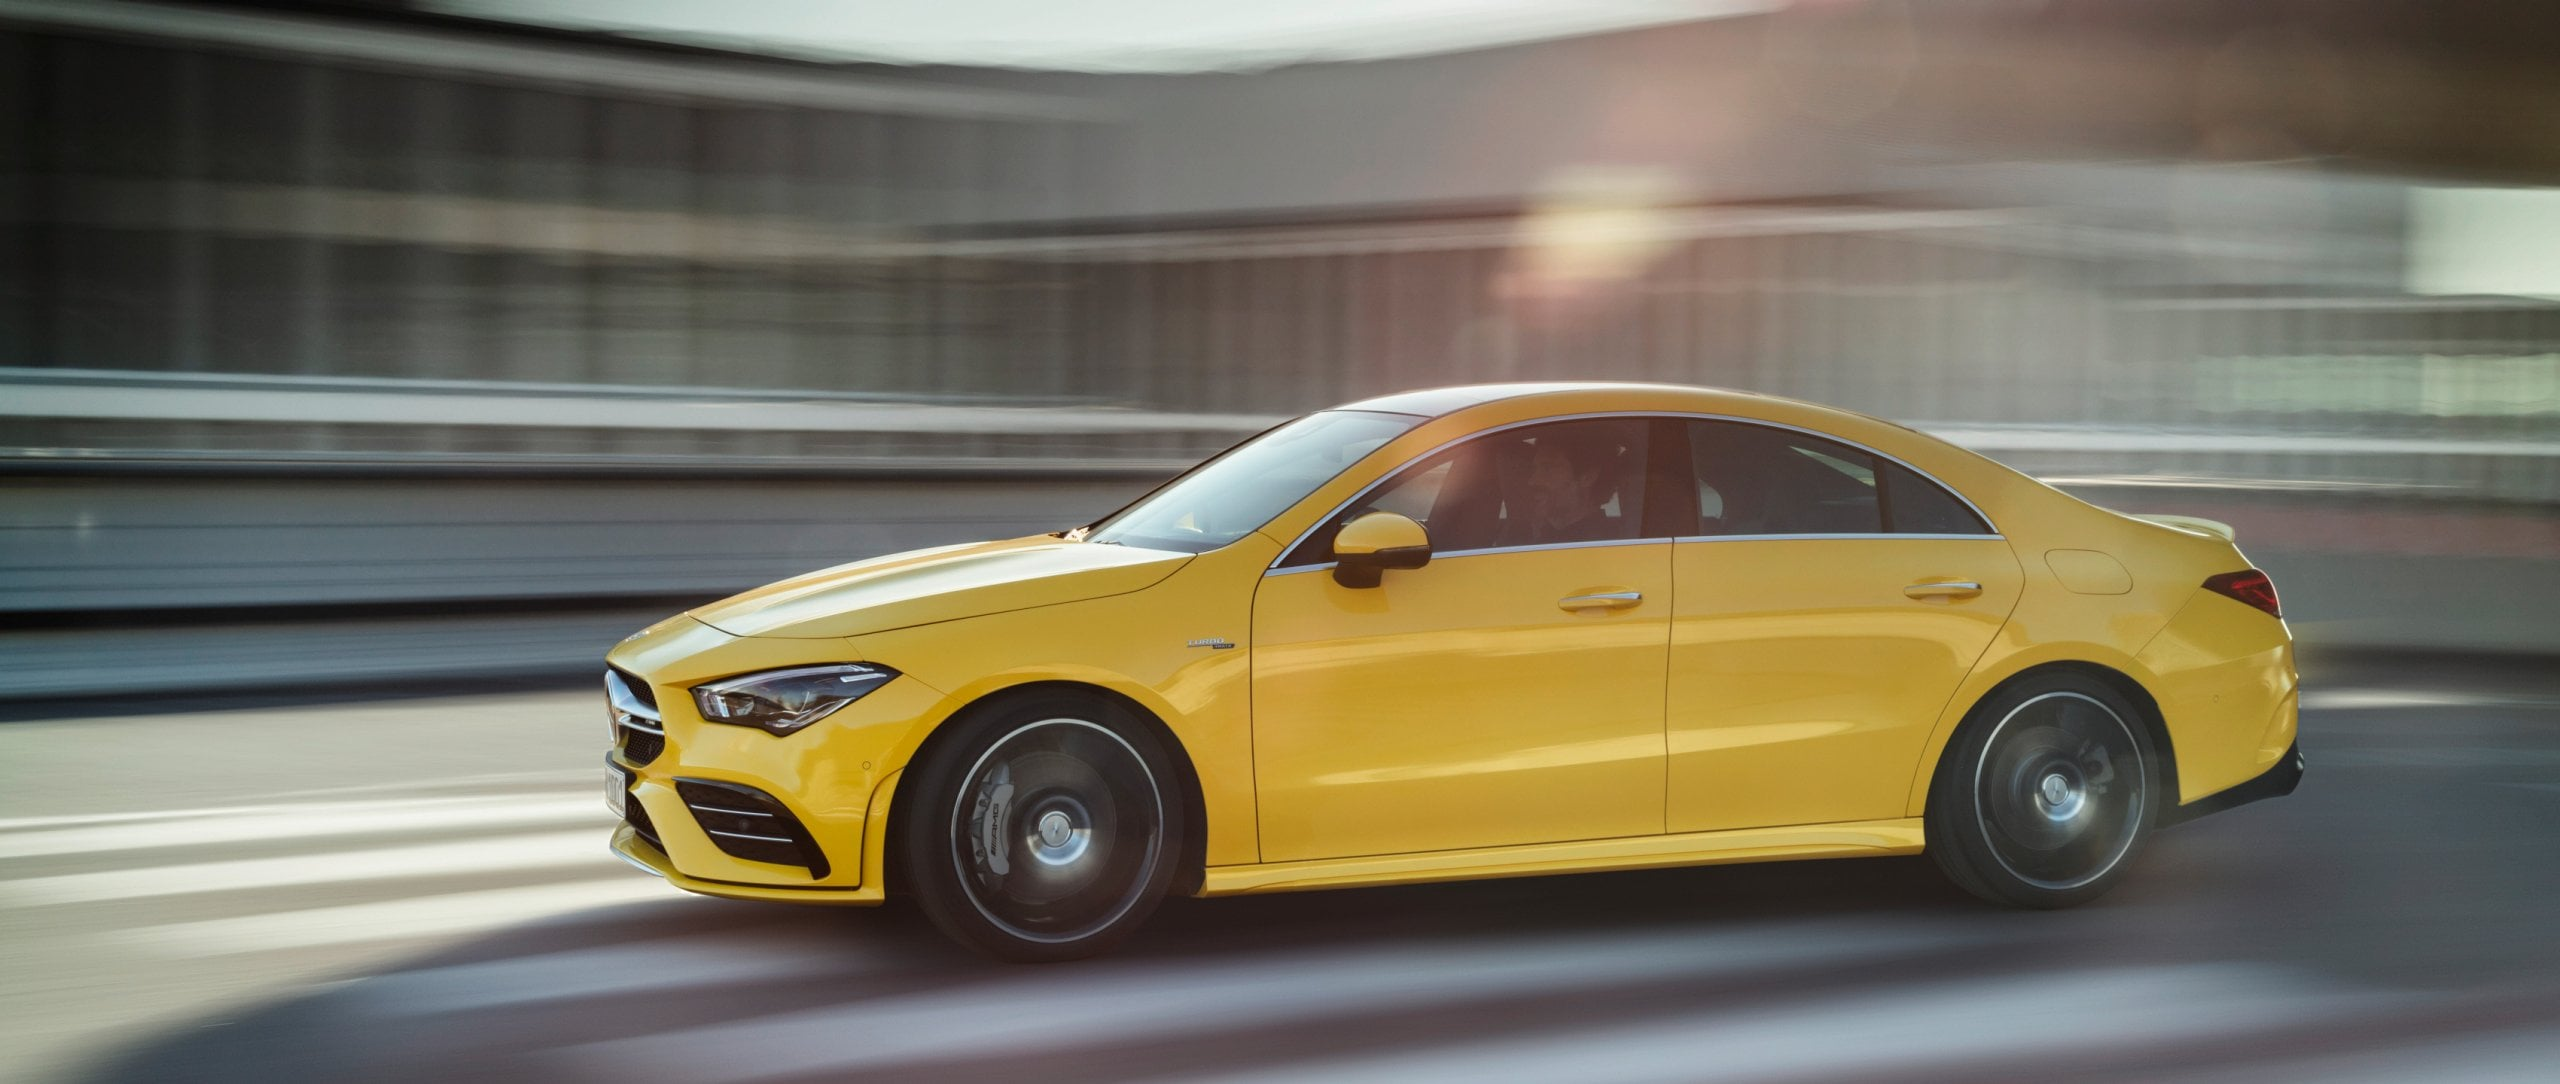 Side view of the new 2019 Mercedes-AMG CLA 35 4MATIC (C 118) in sun yellow.